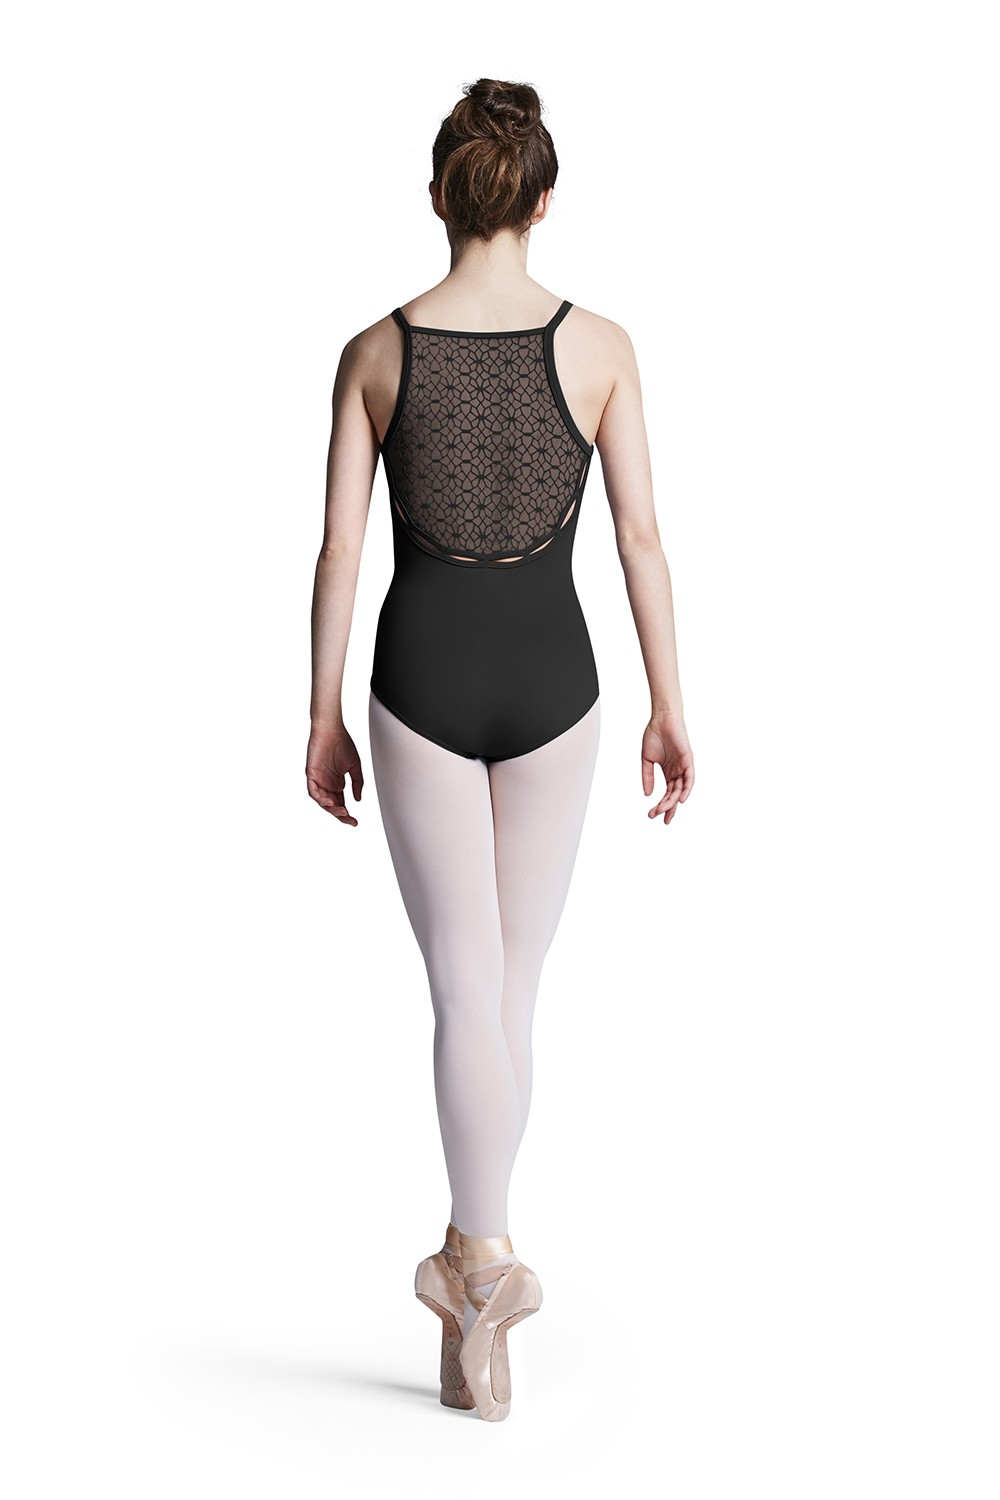 Dionne Womens Camisole Leotards